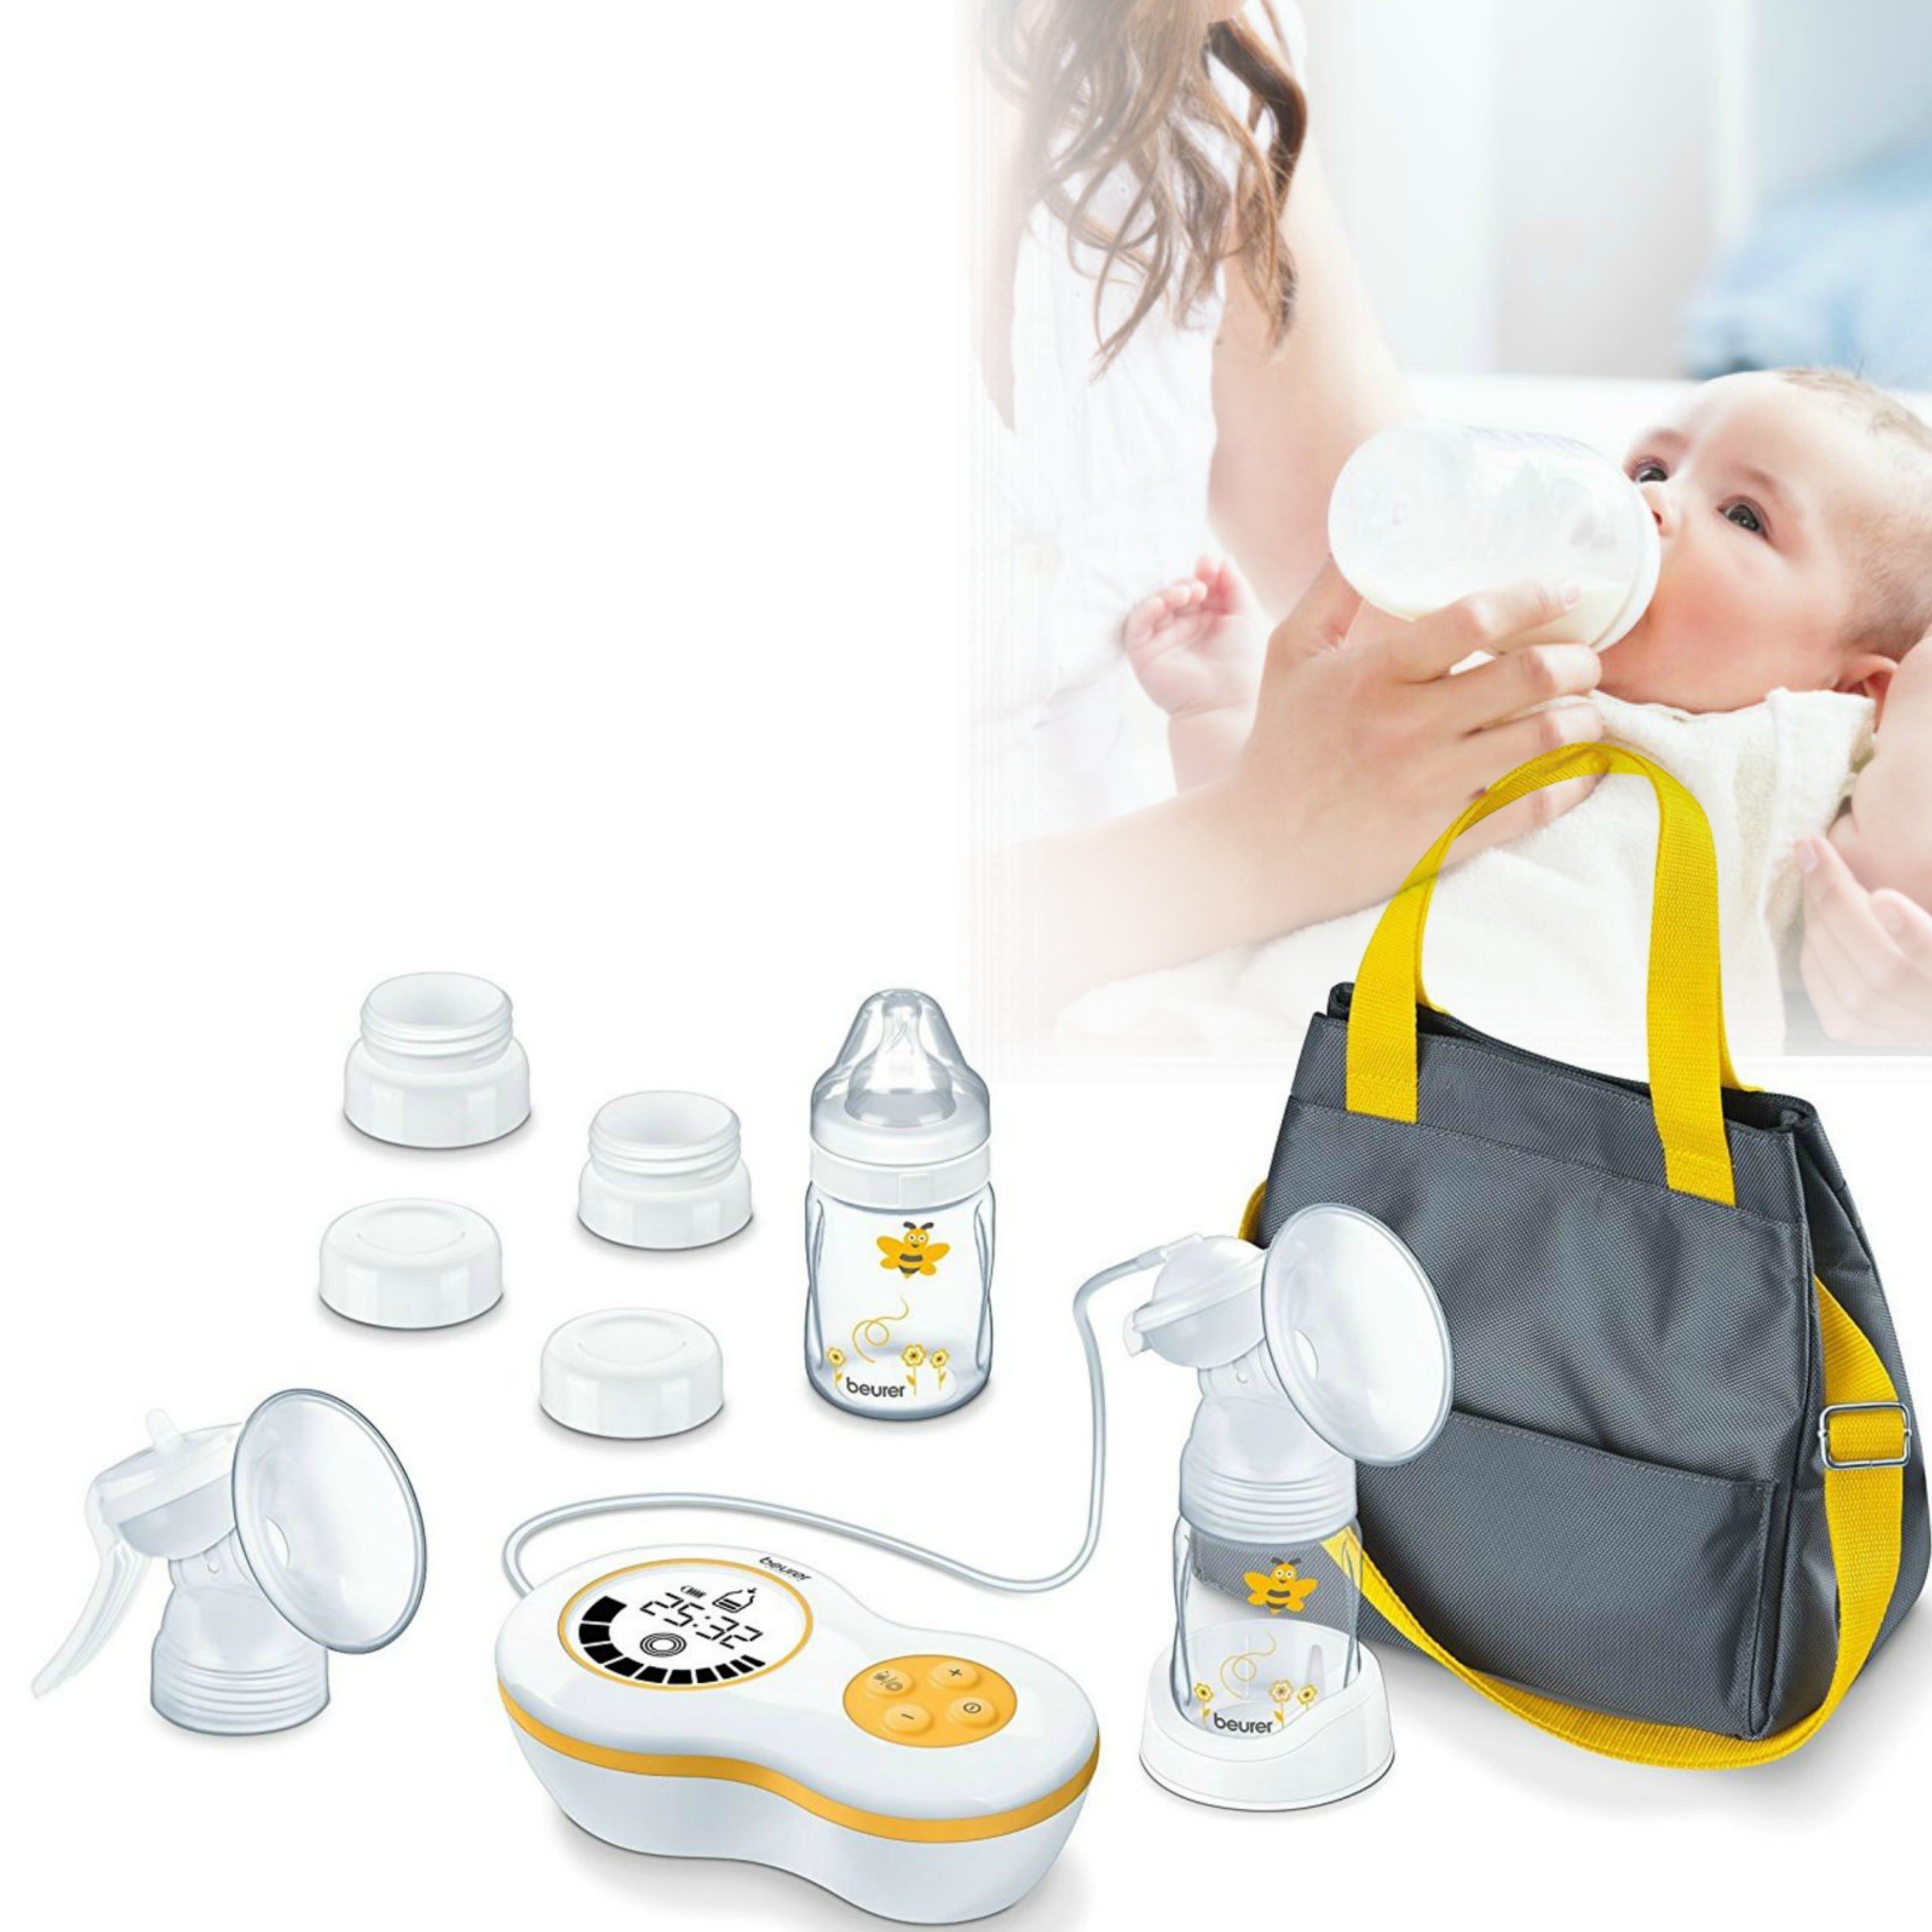 Beurer BY60  Breast Pump Kit|Baby Feeding|Milk|Water|Storage Bag|Accessories|New